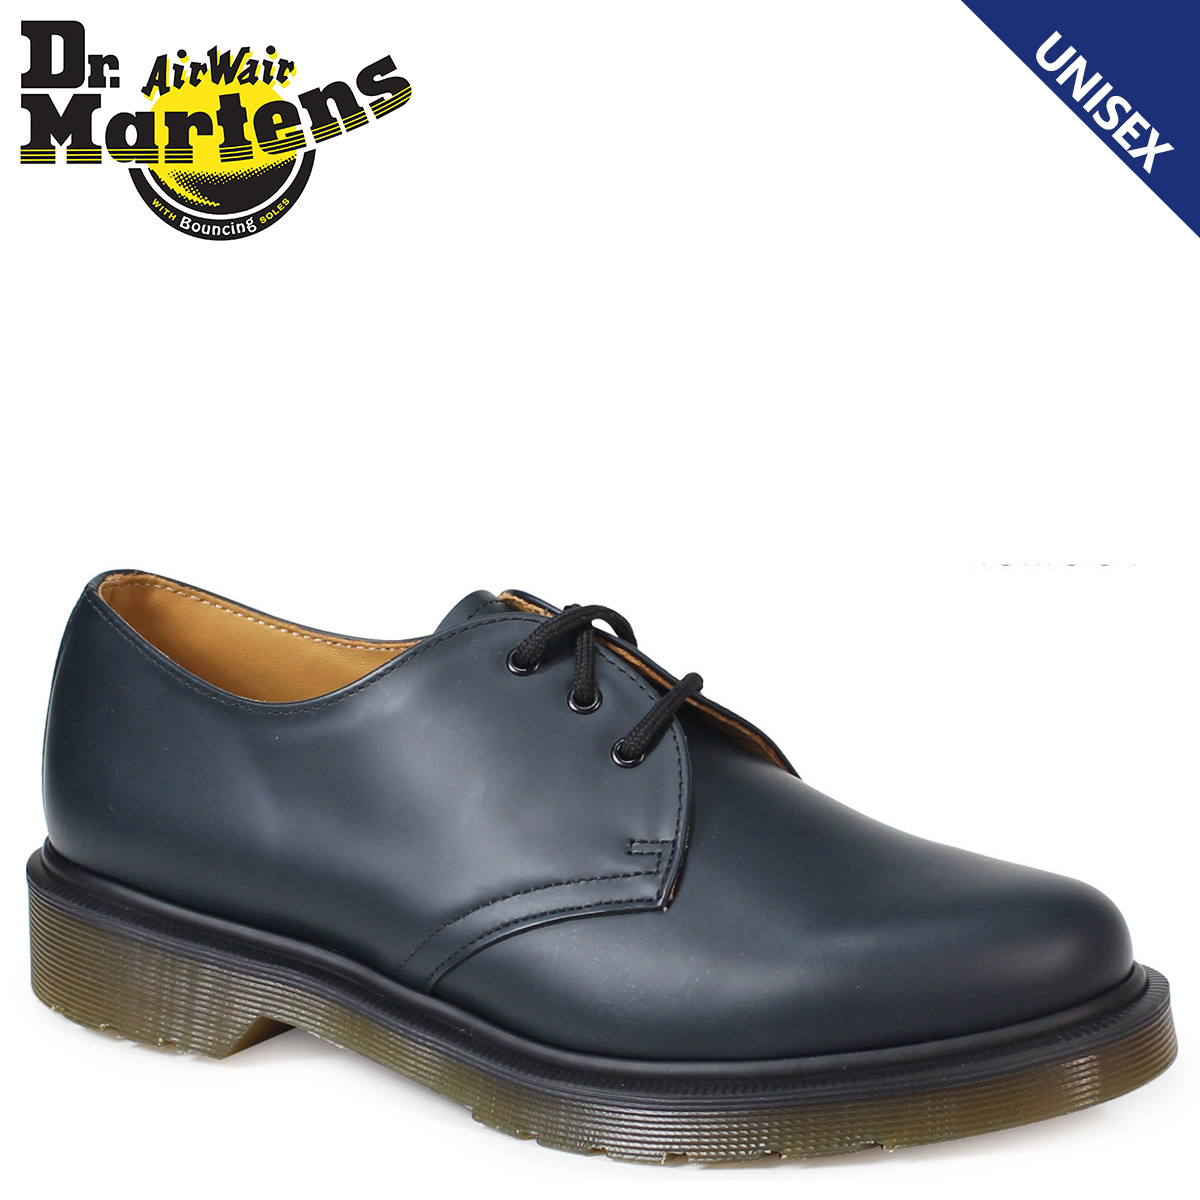 Dr Martens 1461 Pw Part Of The Core Collection 3 Hole Shoes Eyelet Shoe